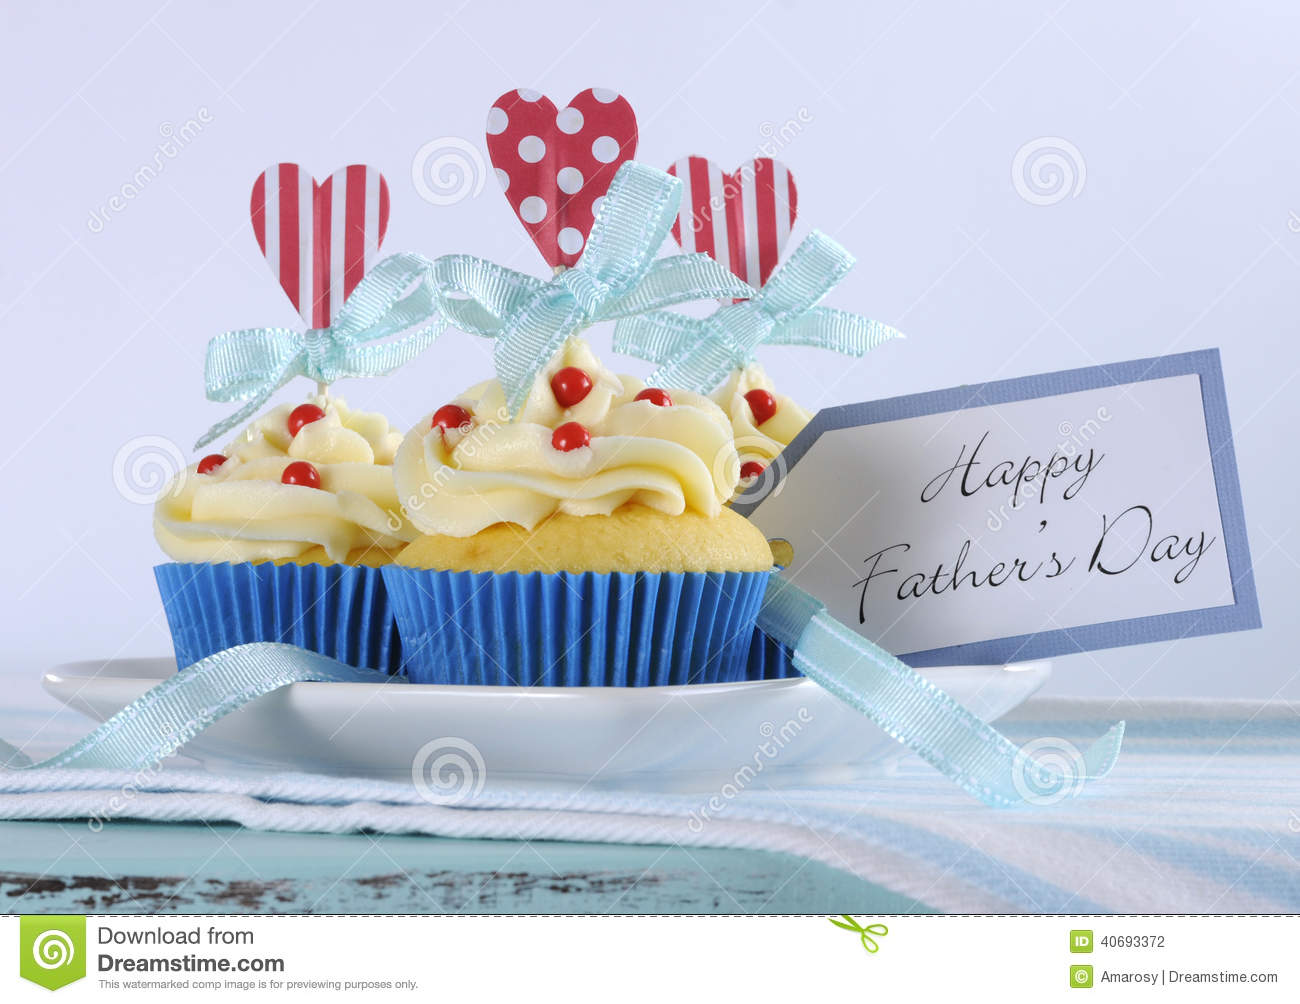 Happy Fathers Day bright and cheery red white and blue decorated cupcakes with heart toppers and gift tag